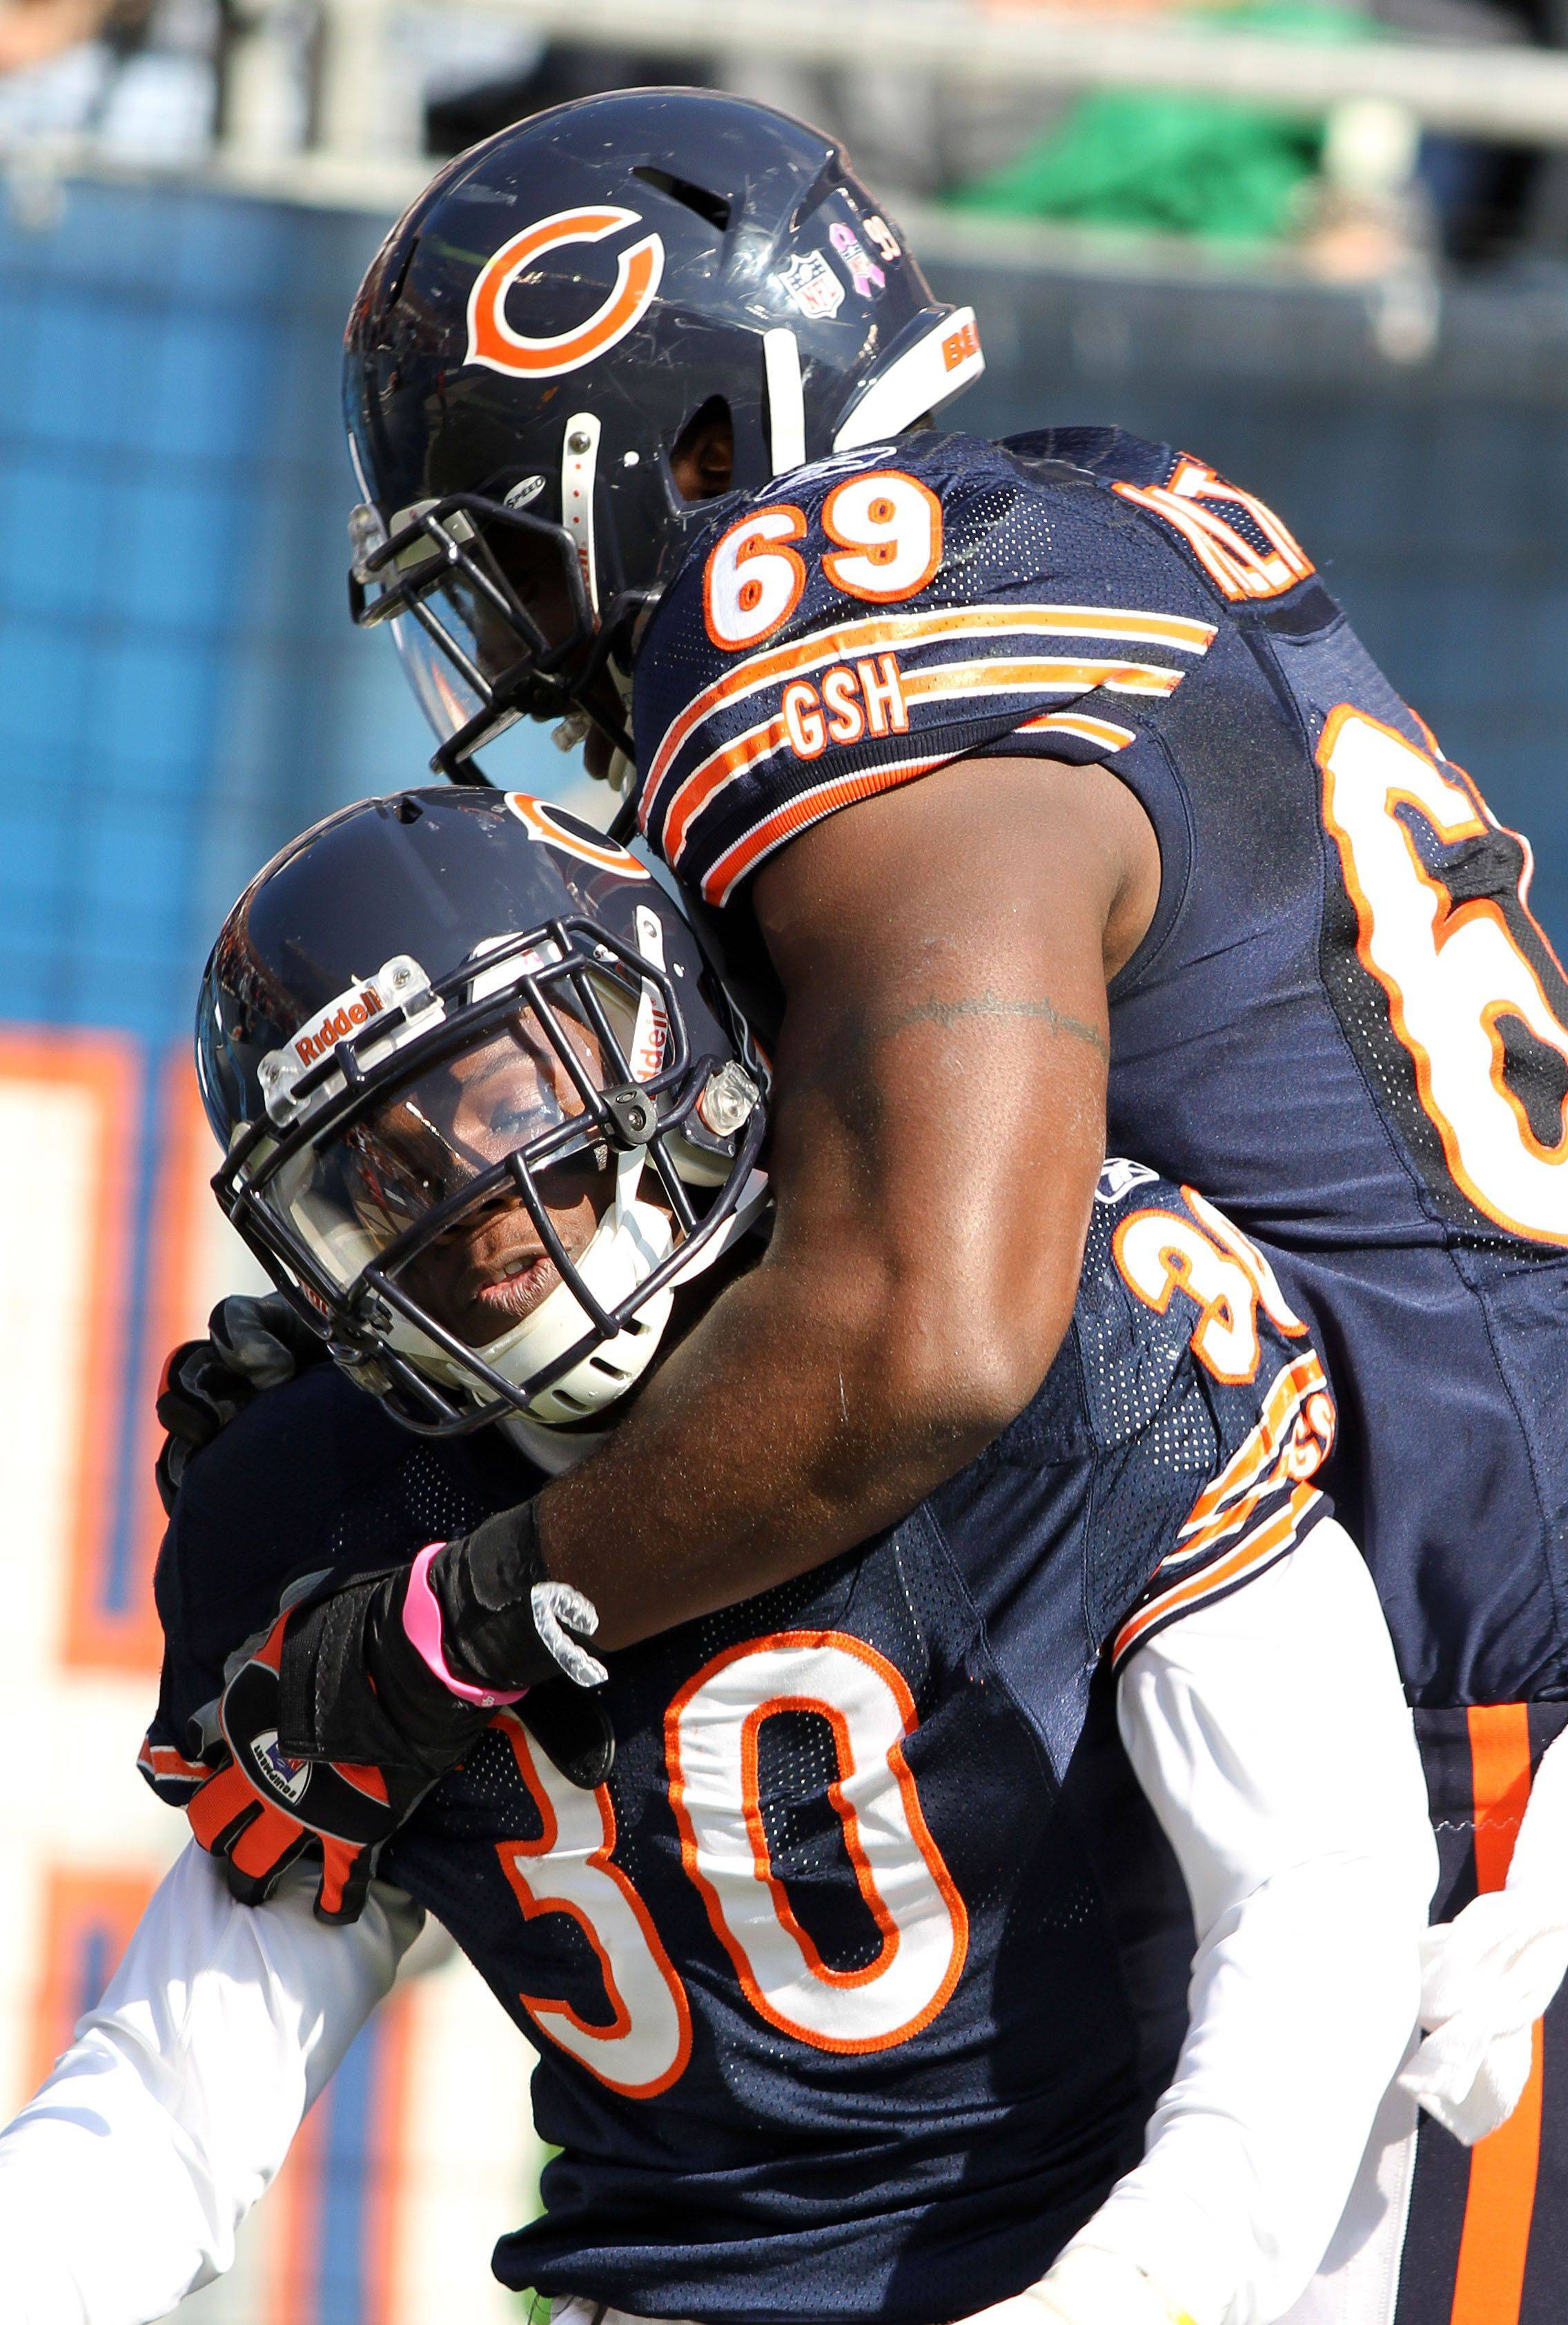 Chicago Bears cornerback D.J. Moore and Chicago Bears defensive end Henry Melton celebrate after Moore's interception for touchdown during the Bears' 14-17 loss to the Redskins.